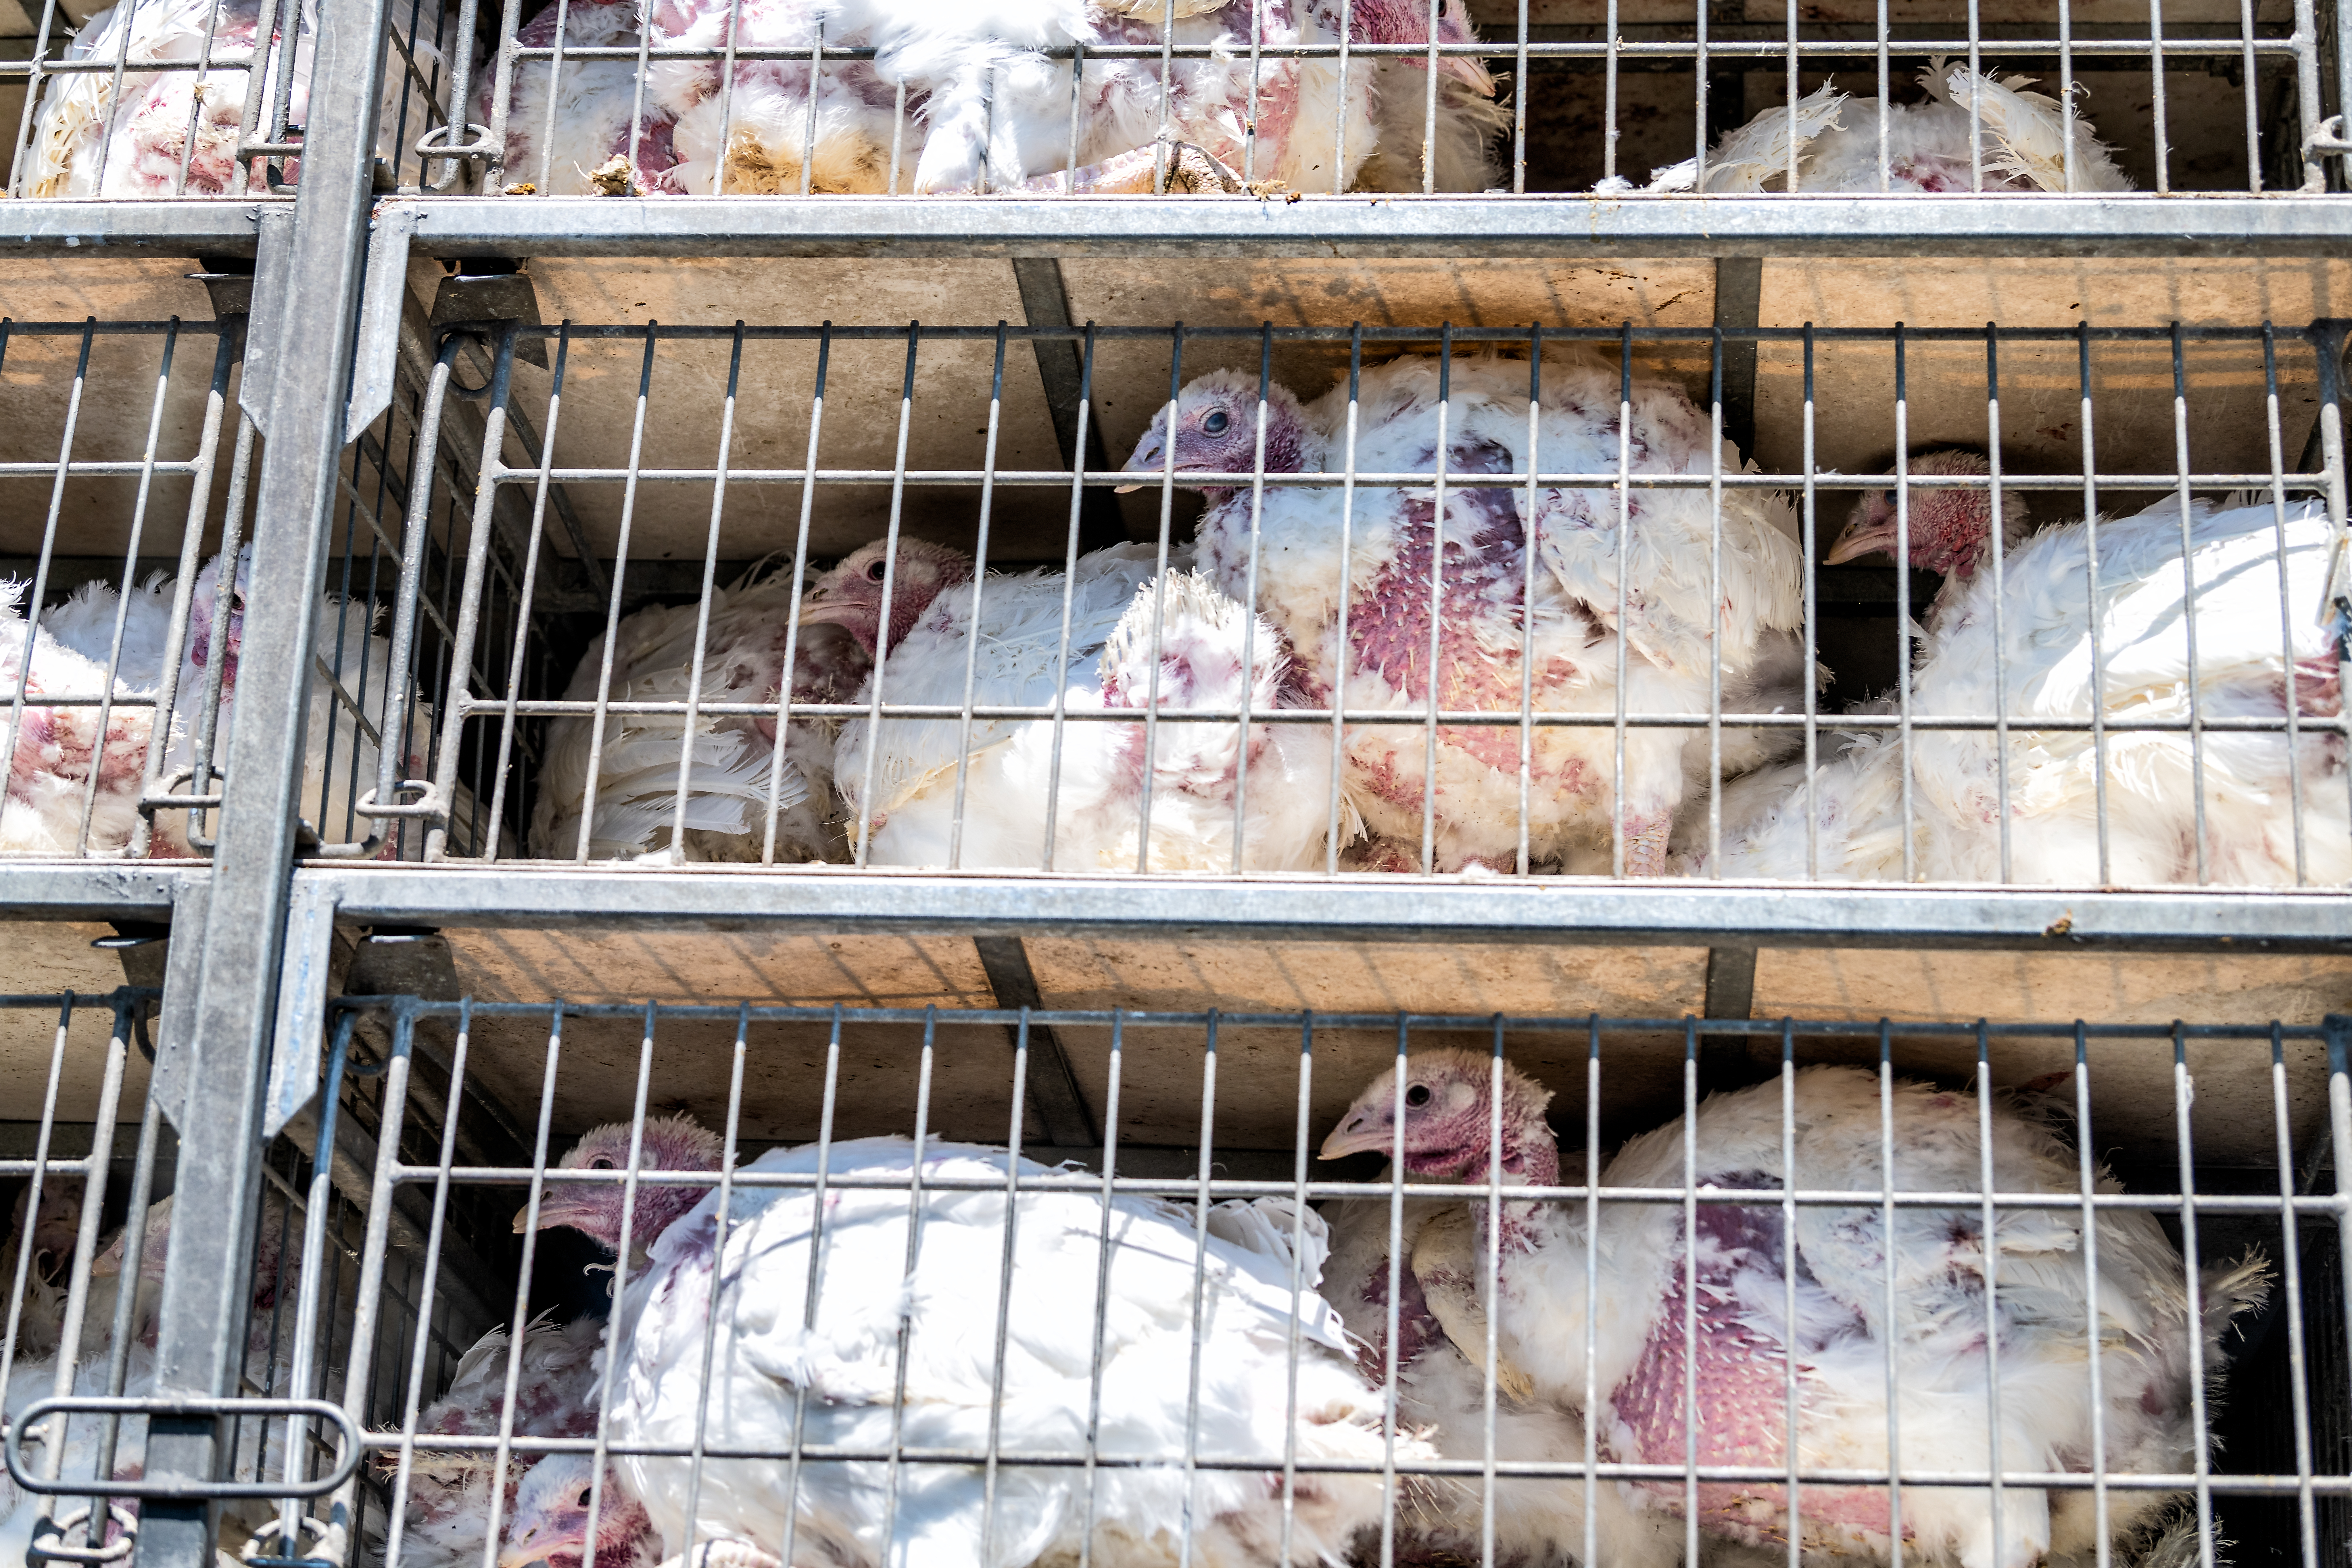 turkeys in cages